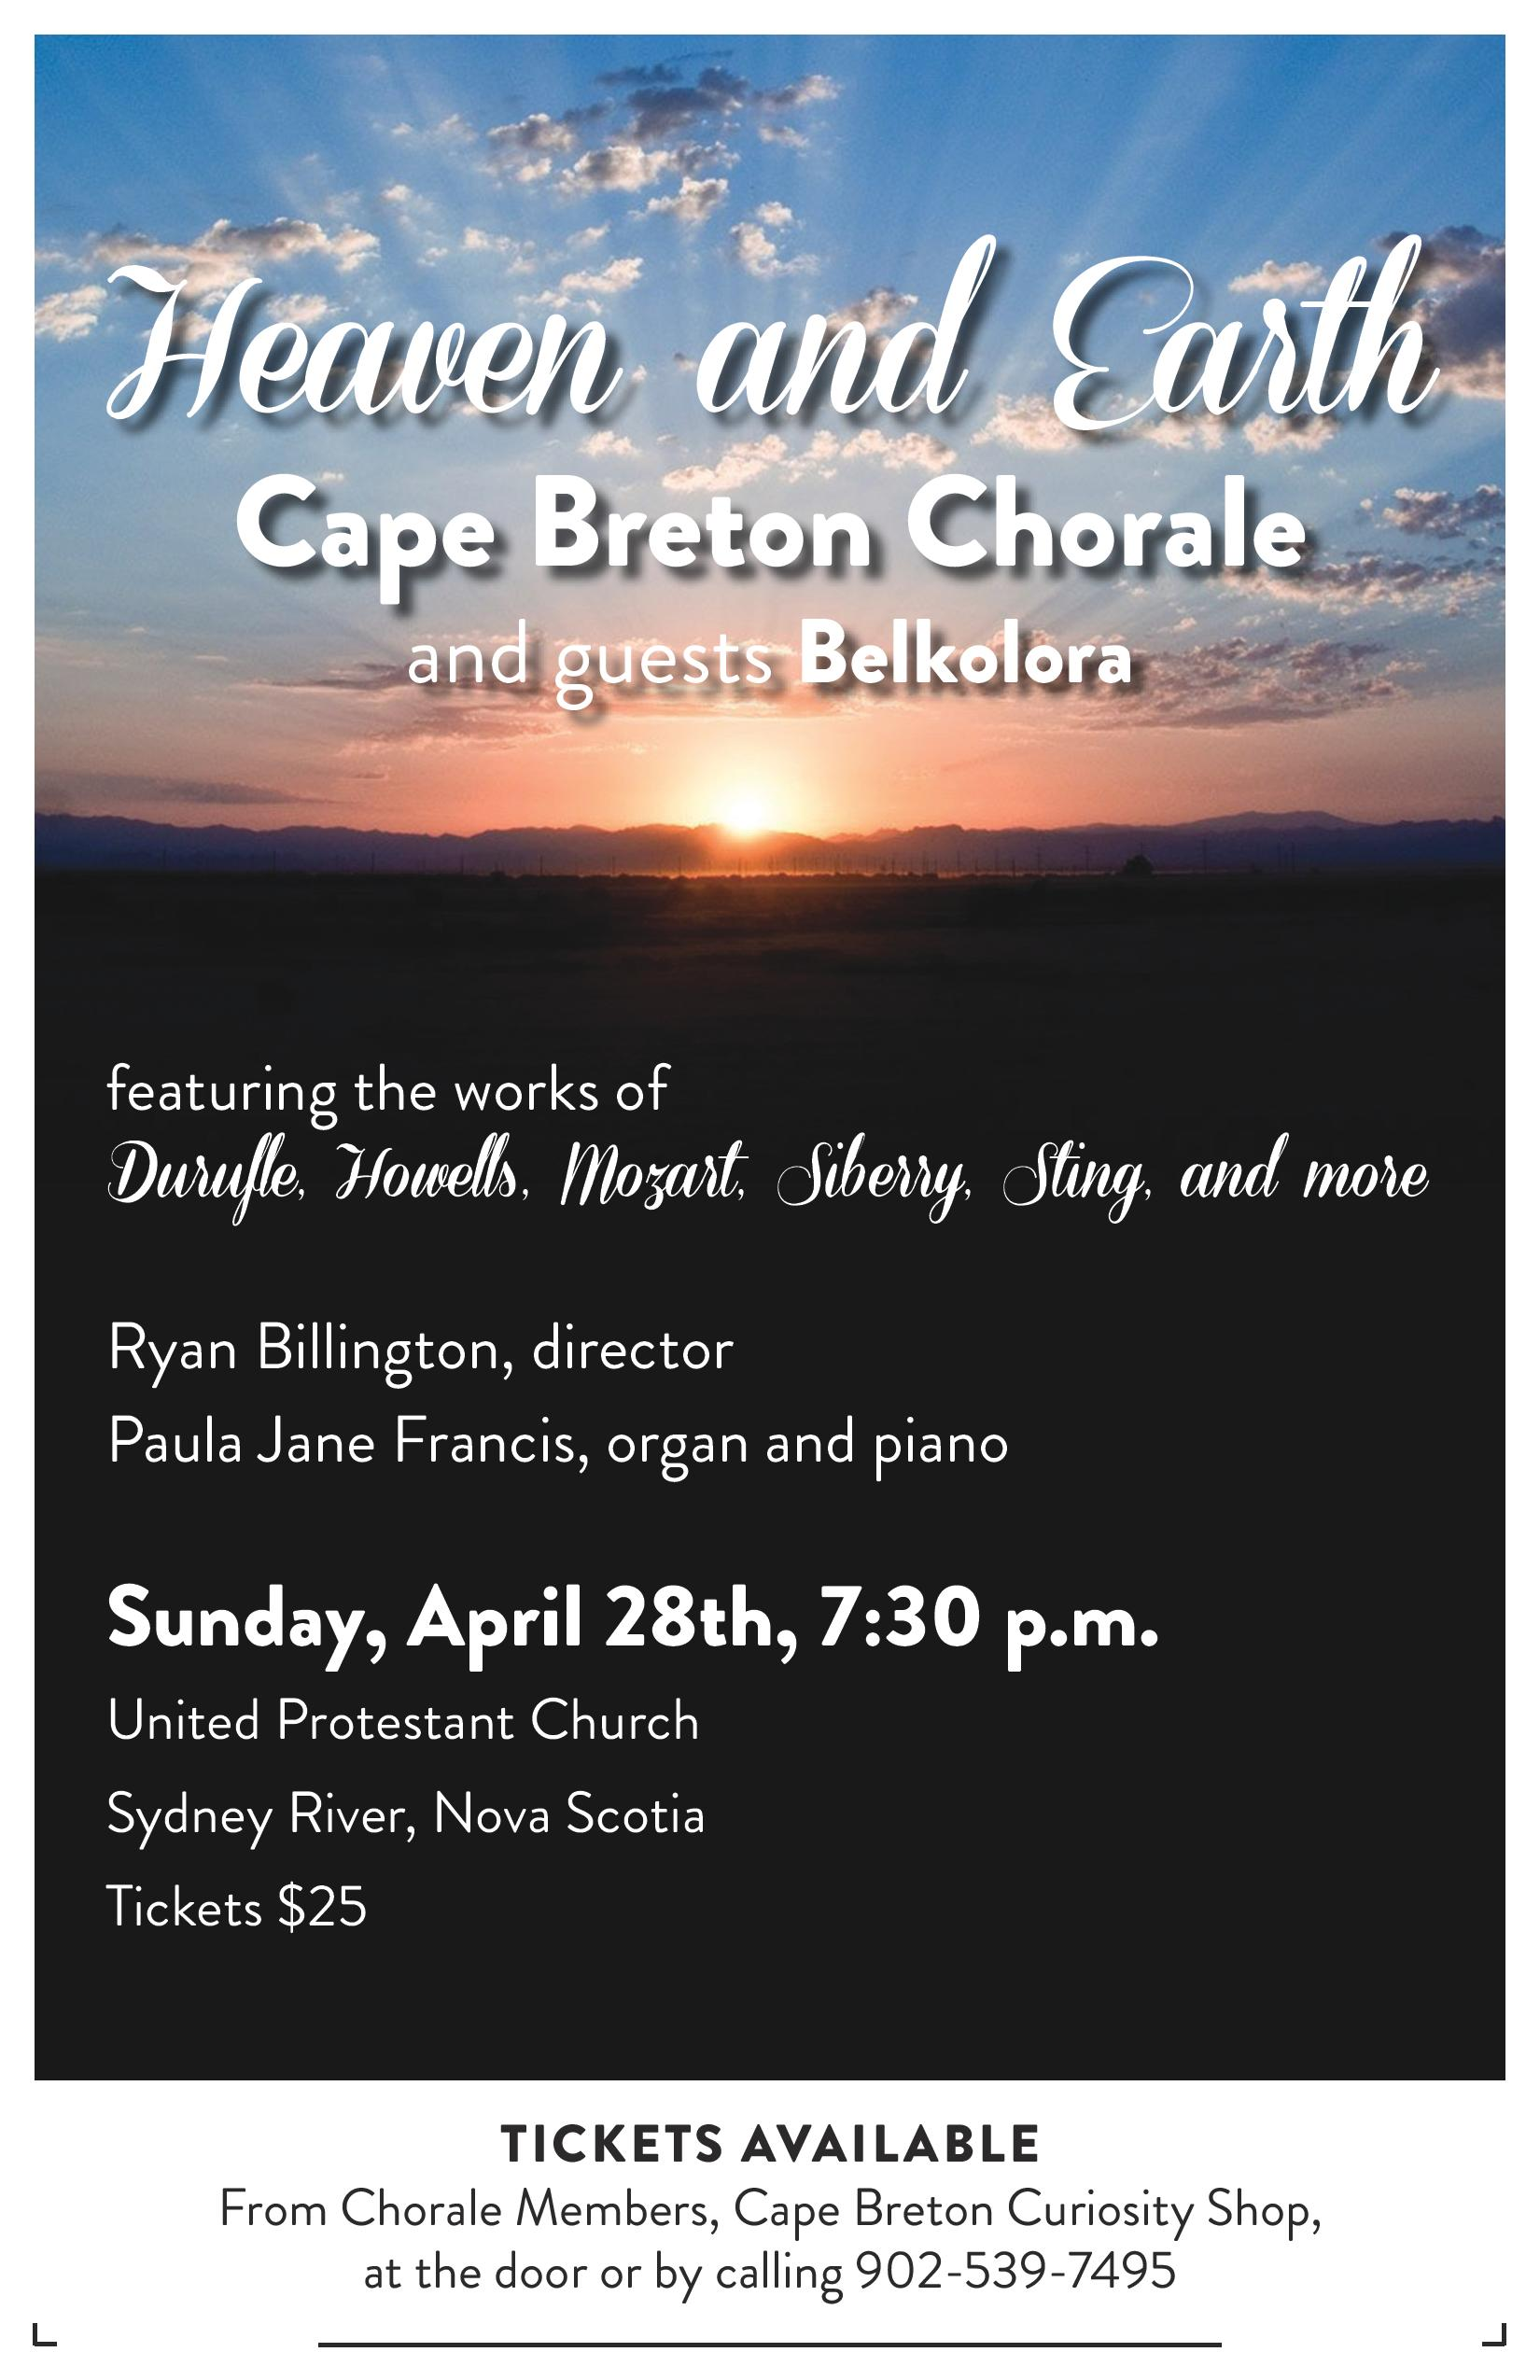 Cape Breton Chorale Heaven and Earth Poster PROOF 1 page 001